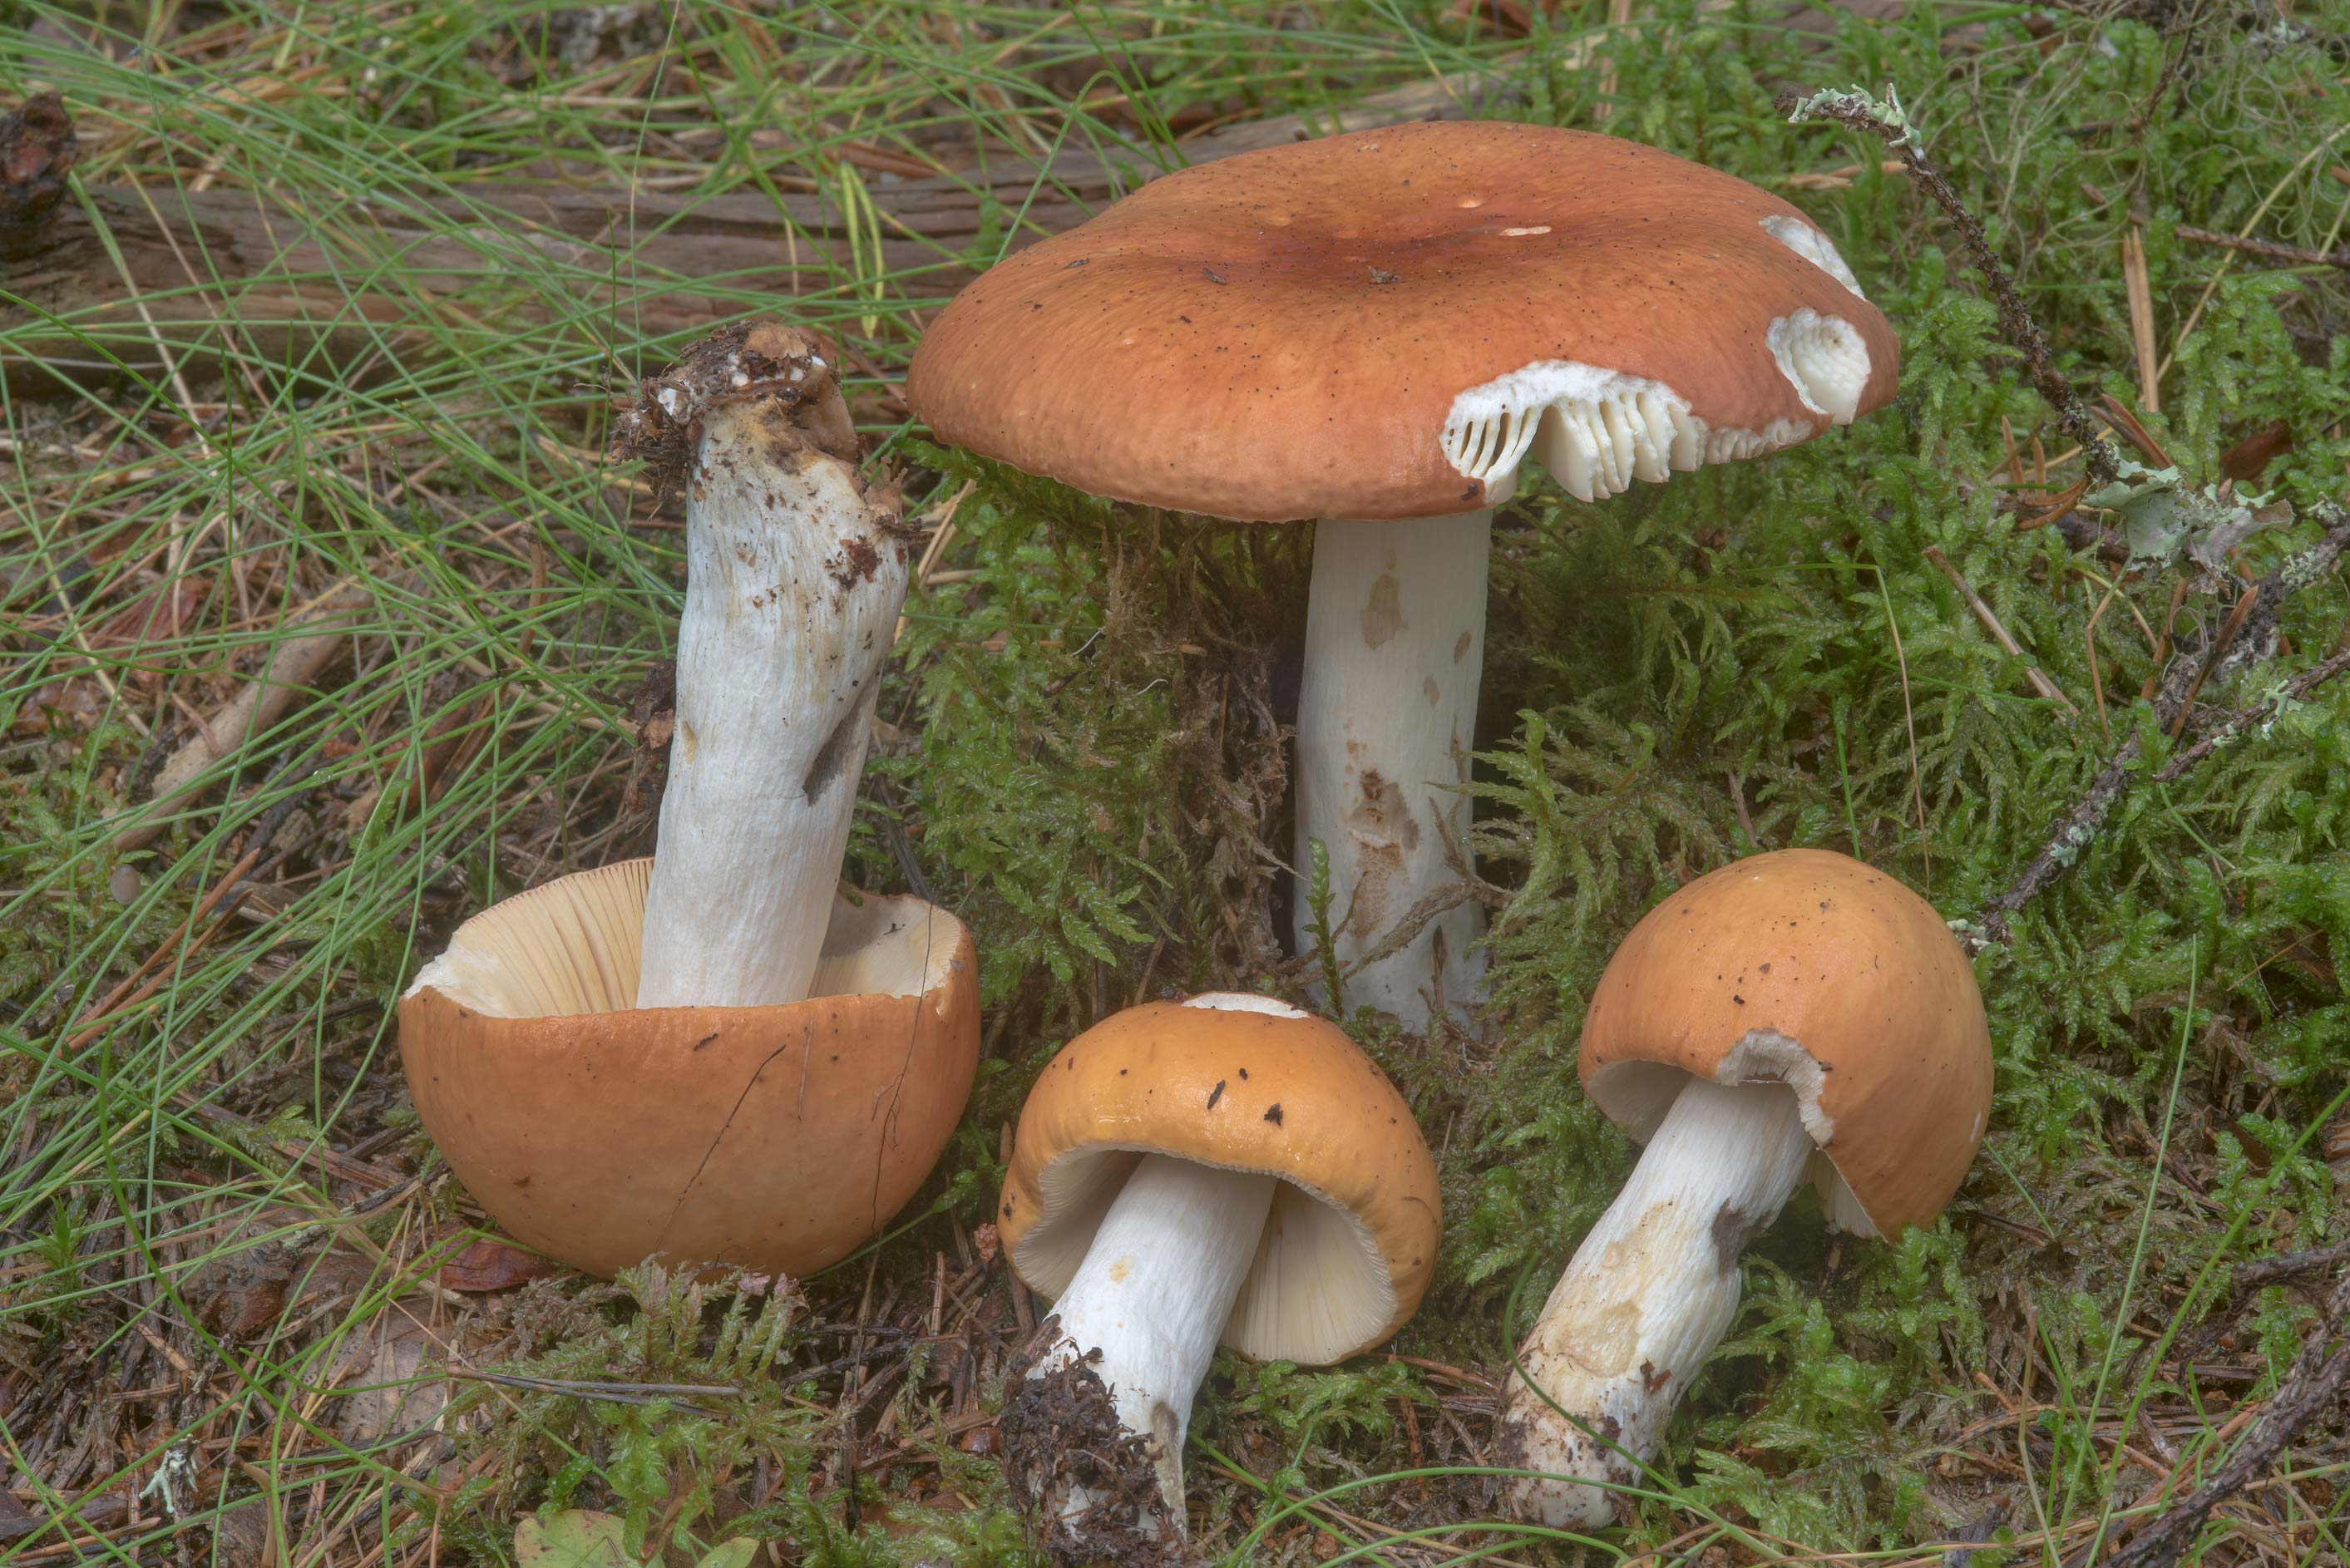 Greying brittlegill mushrooms (Russula decolorans...miles north from St.Petersburg. Russia